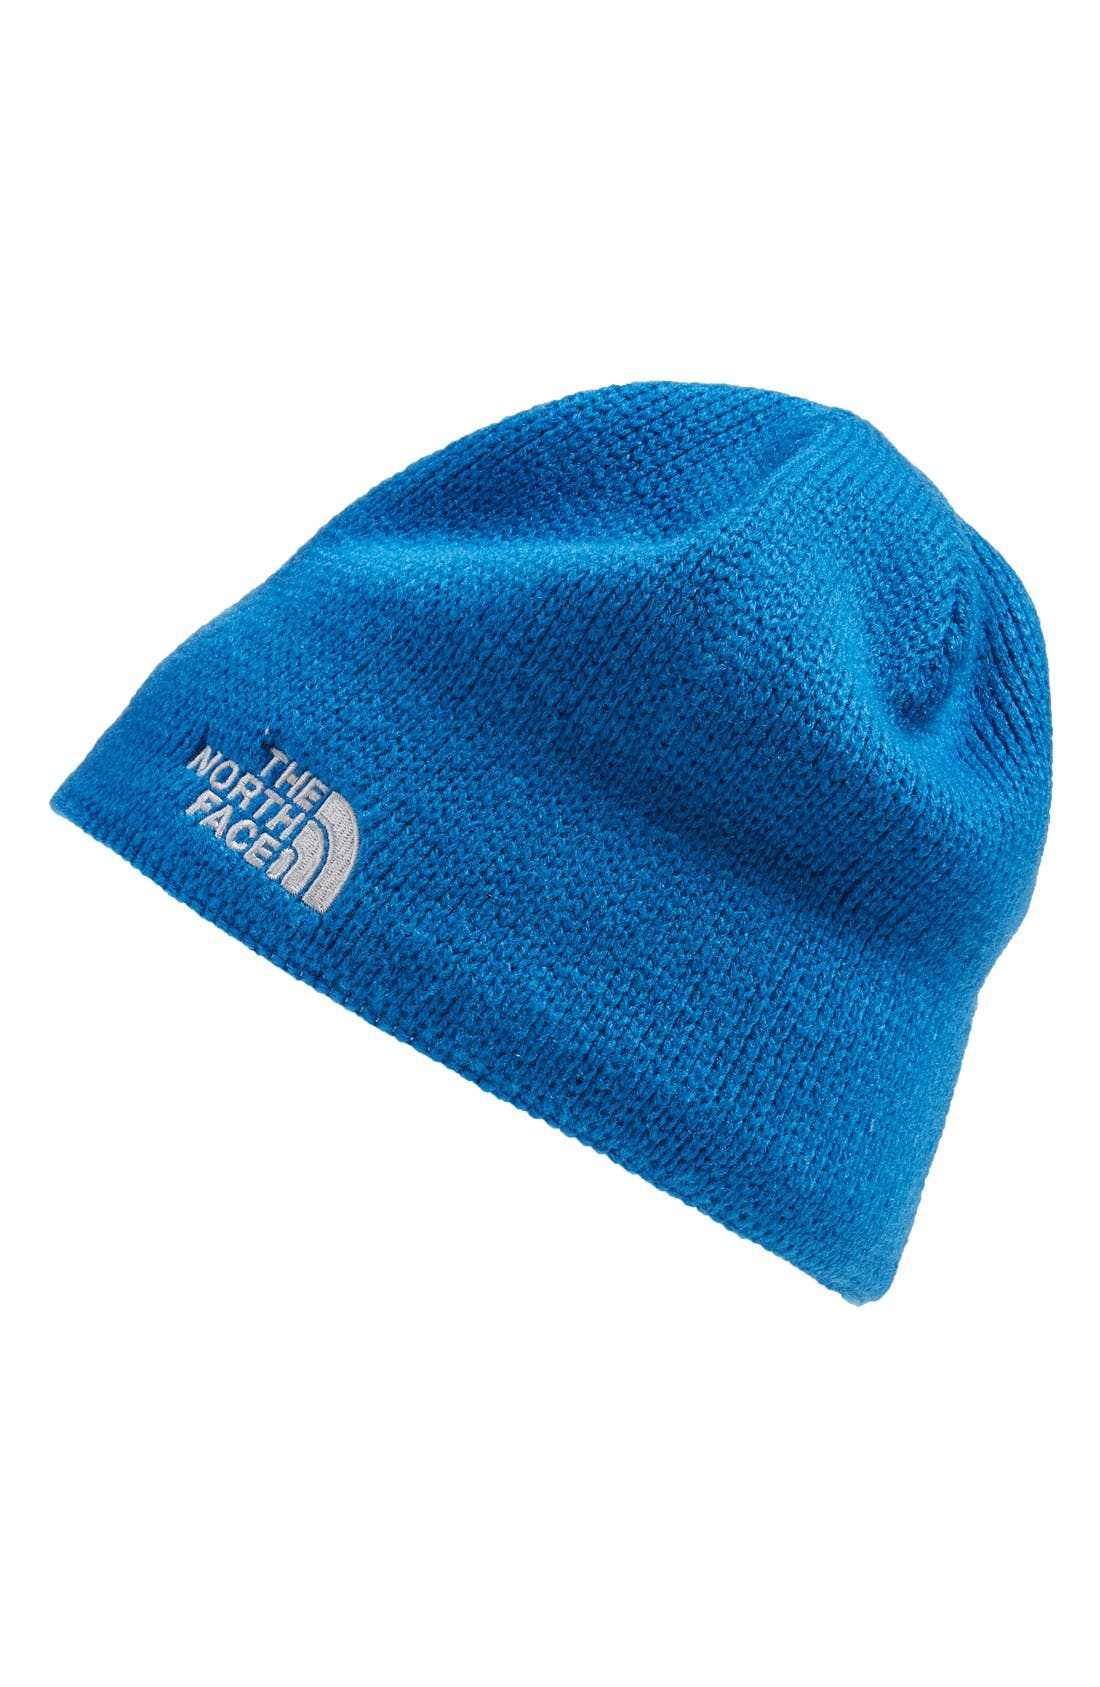 'Bones' Microfleece Beanie,                             Main thumbnail 8, color,